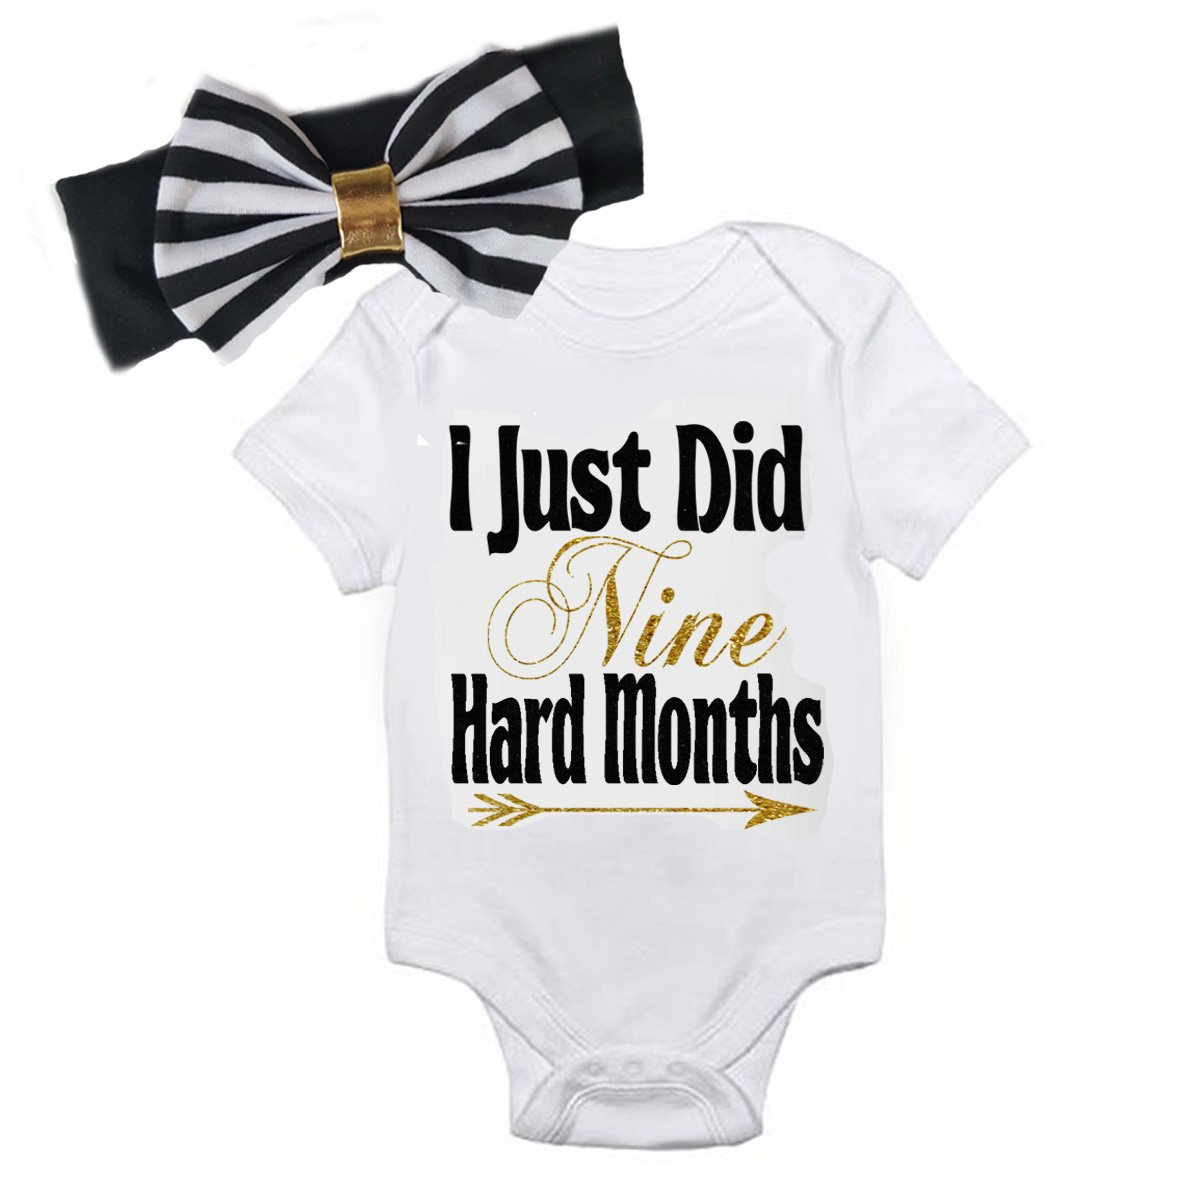 5d1b534275e6c Amazon.com: G&G - Funny Baby Girls 2pc Coming Home Outfits for ...